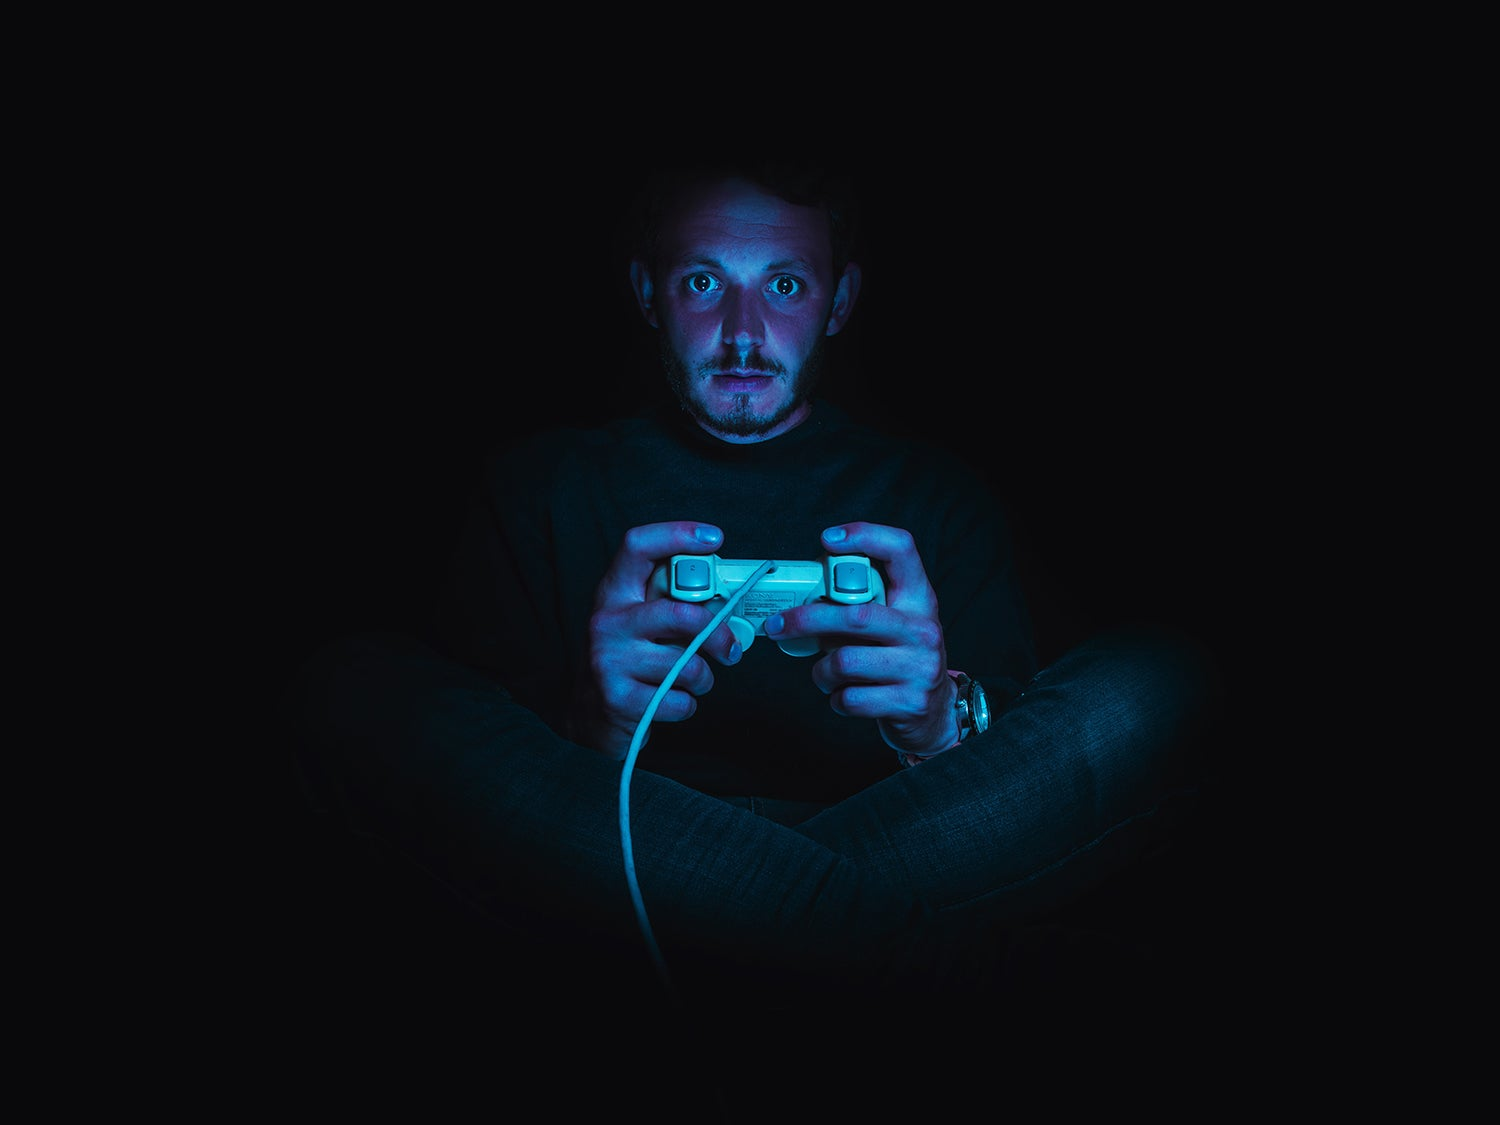 playing video games in the dark lit by tv